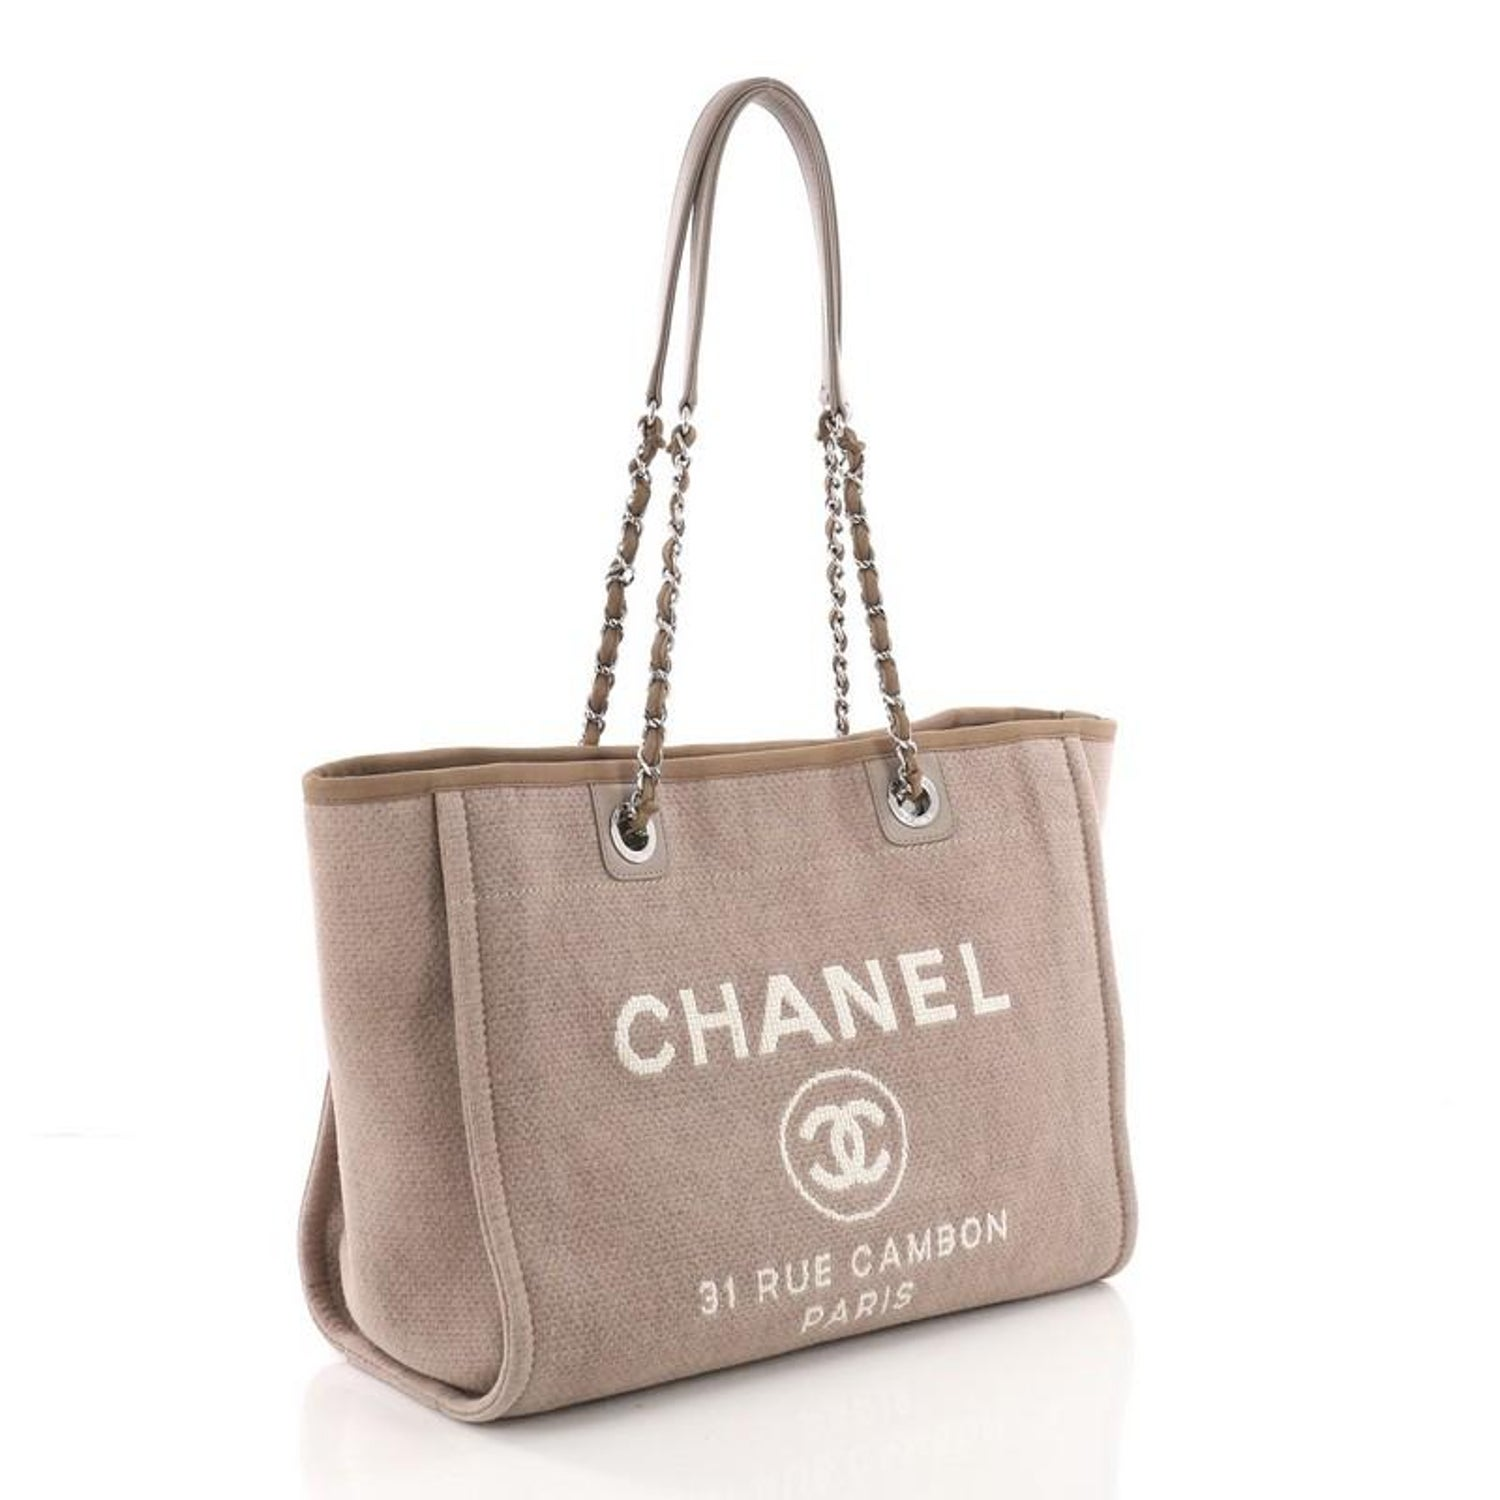 22f01702065c Chanel Deauville Chain Tote Canvas Small at 1stdibs